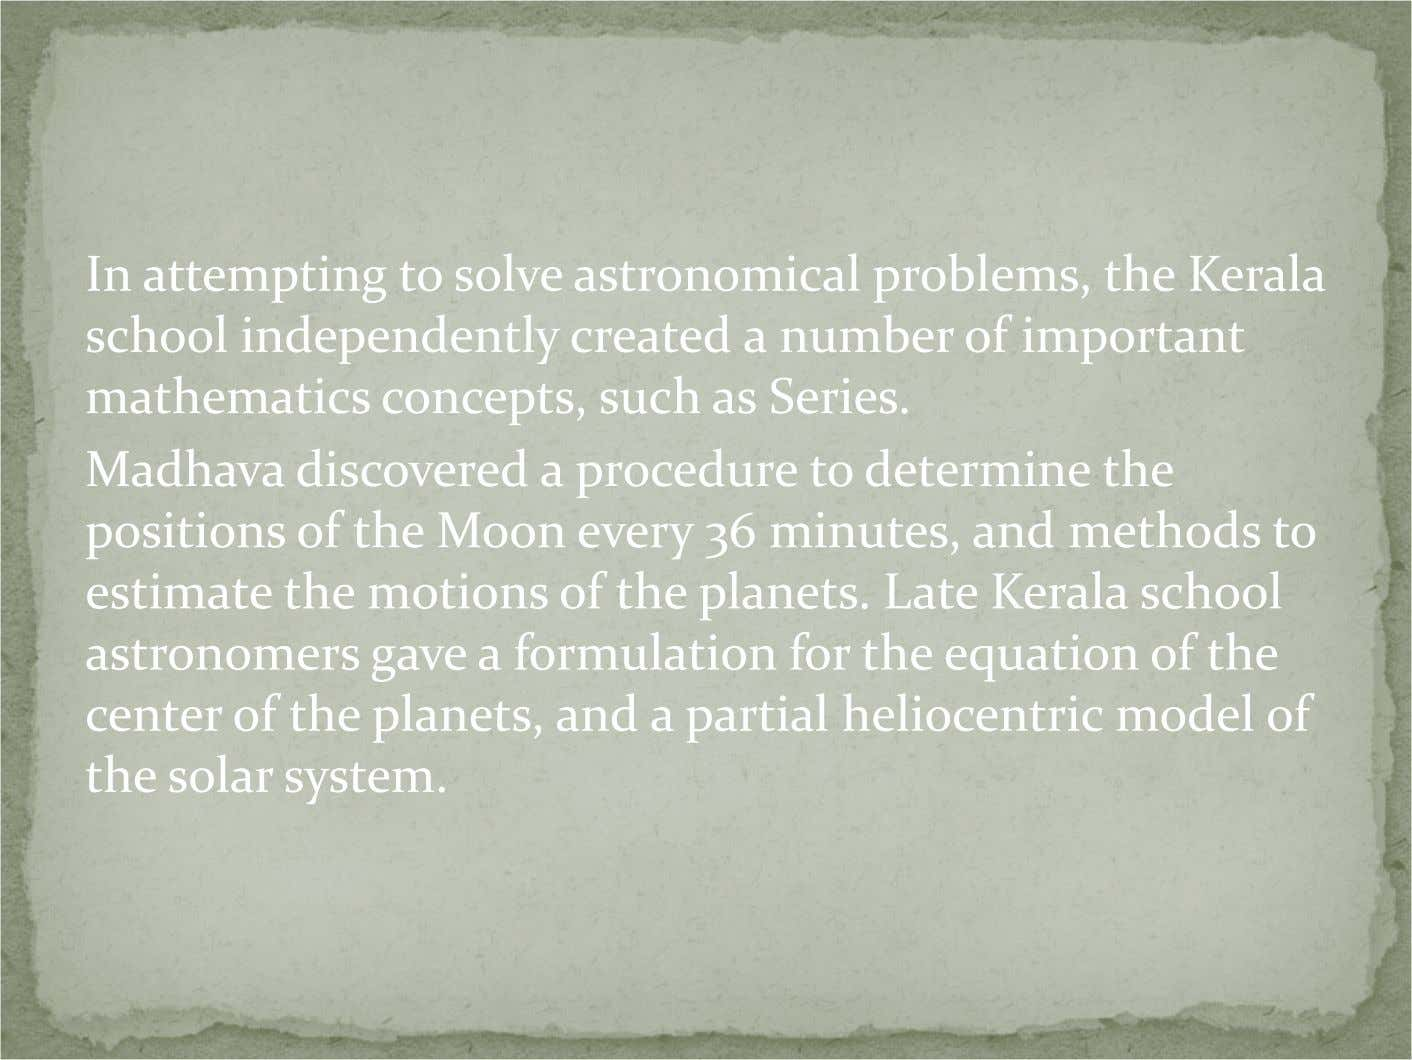 In attempting to solve astronomical problems, the Kerala school independently created a number of important